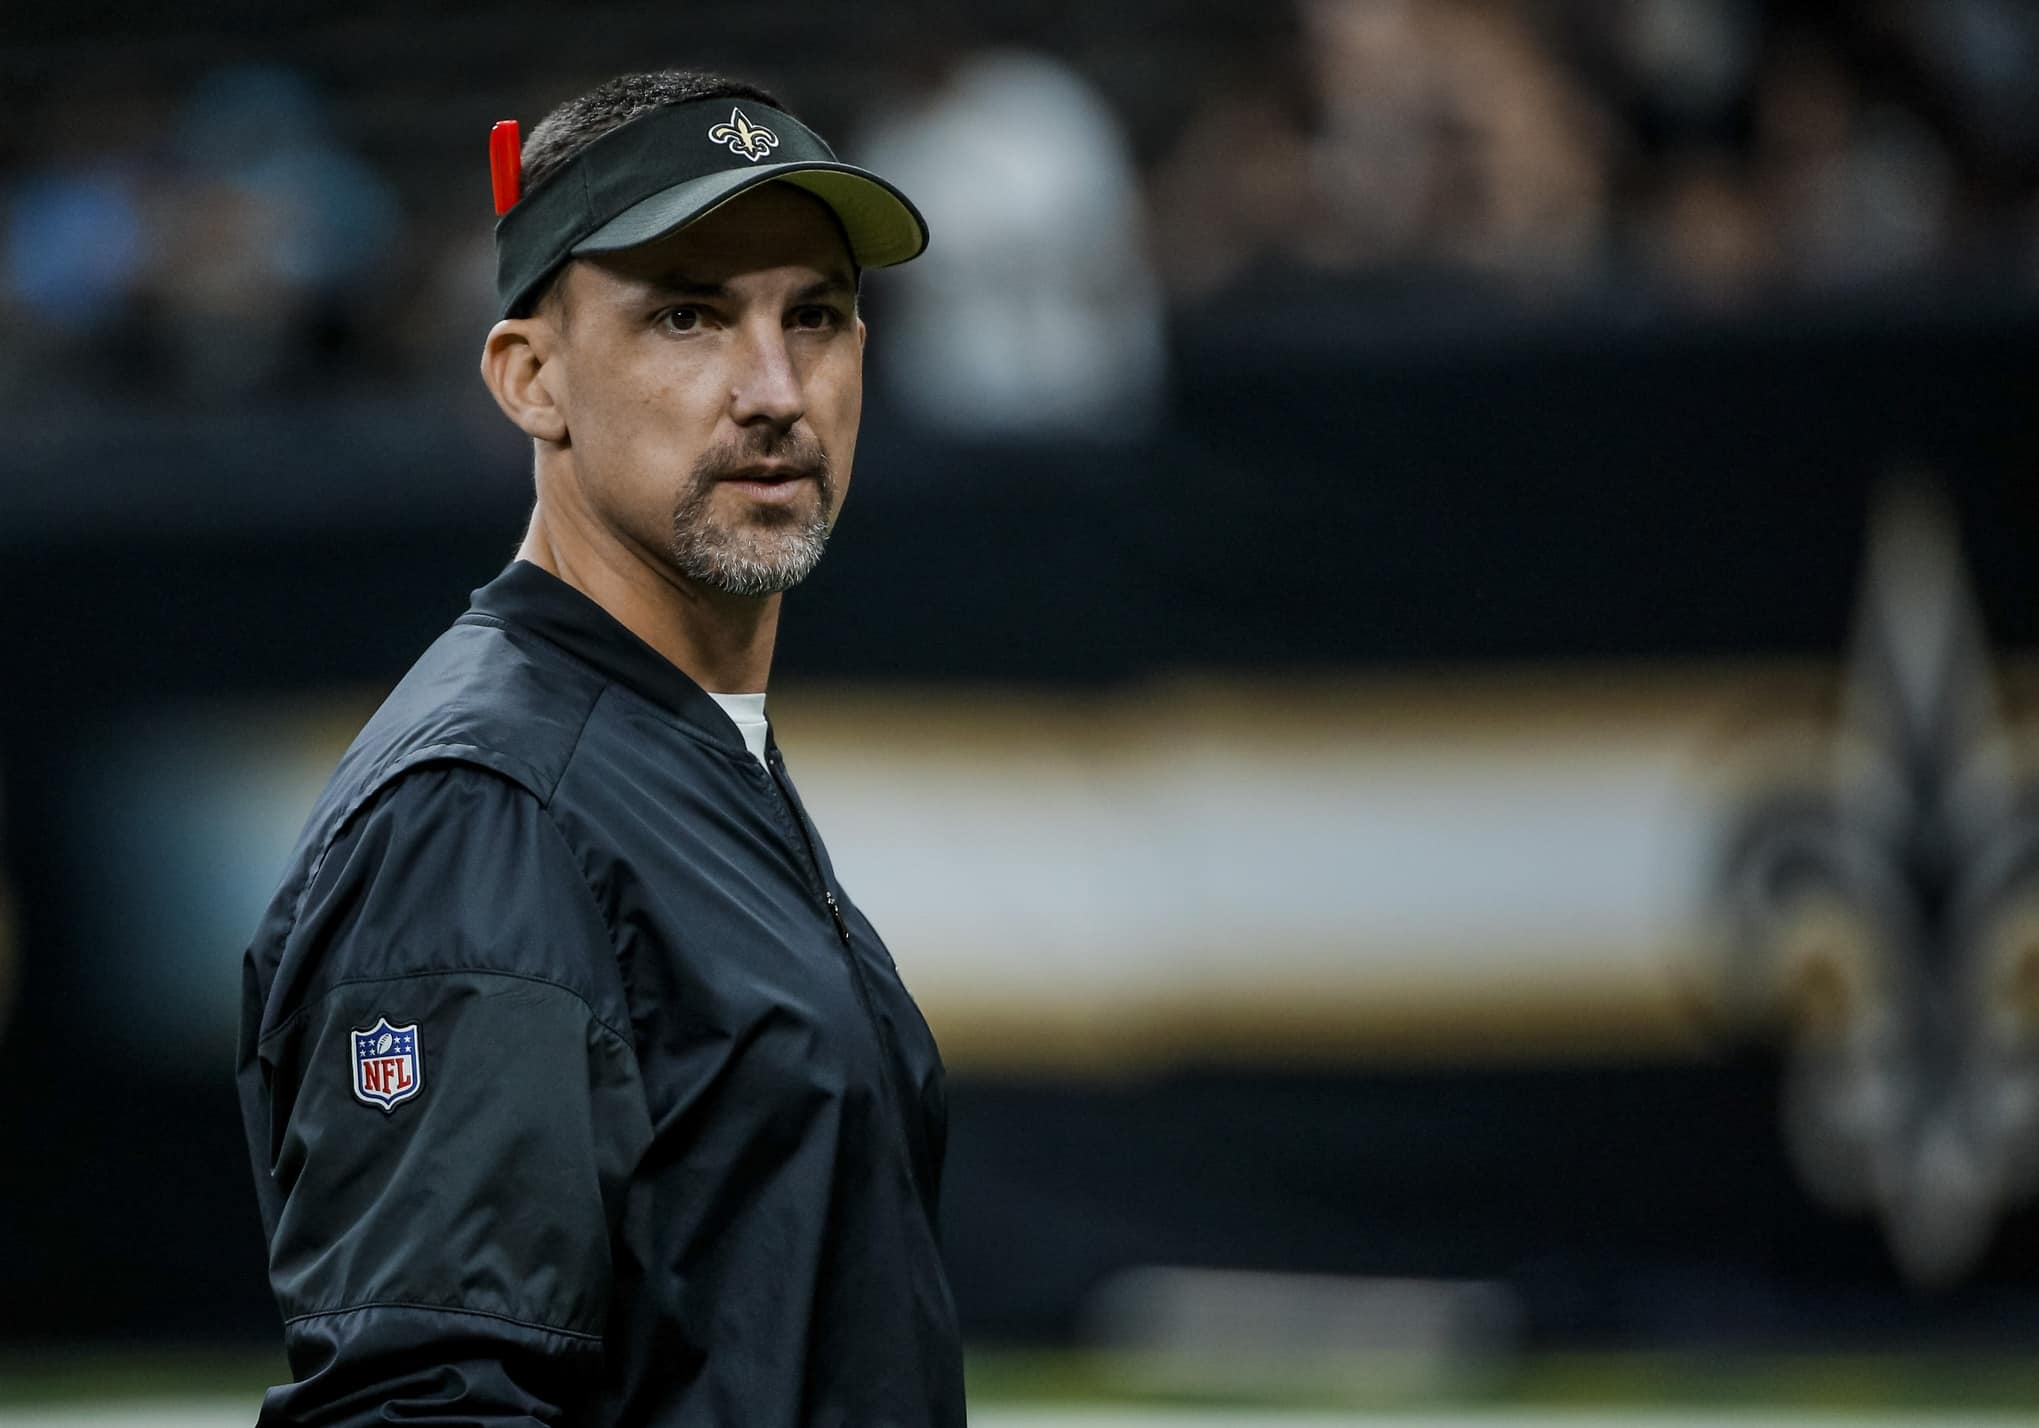 e7ee77728 Seven under-the-radar NFL head coaching candidates